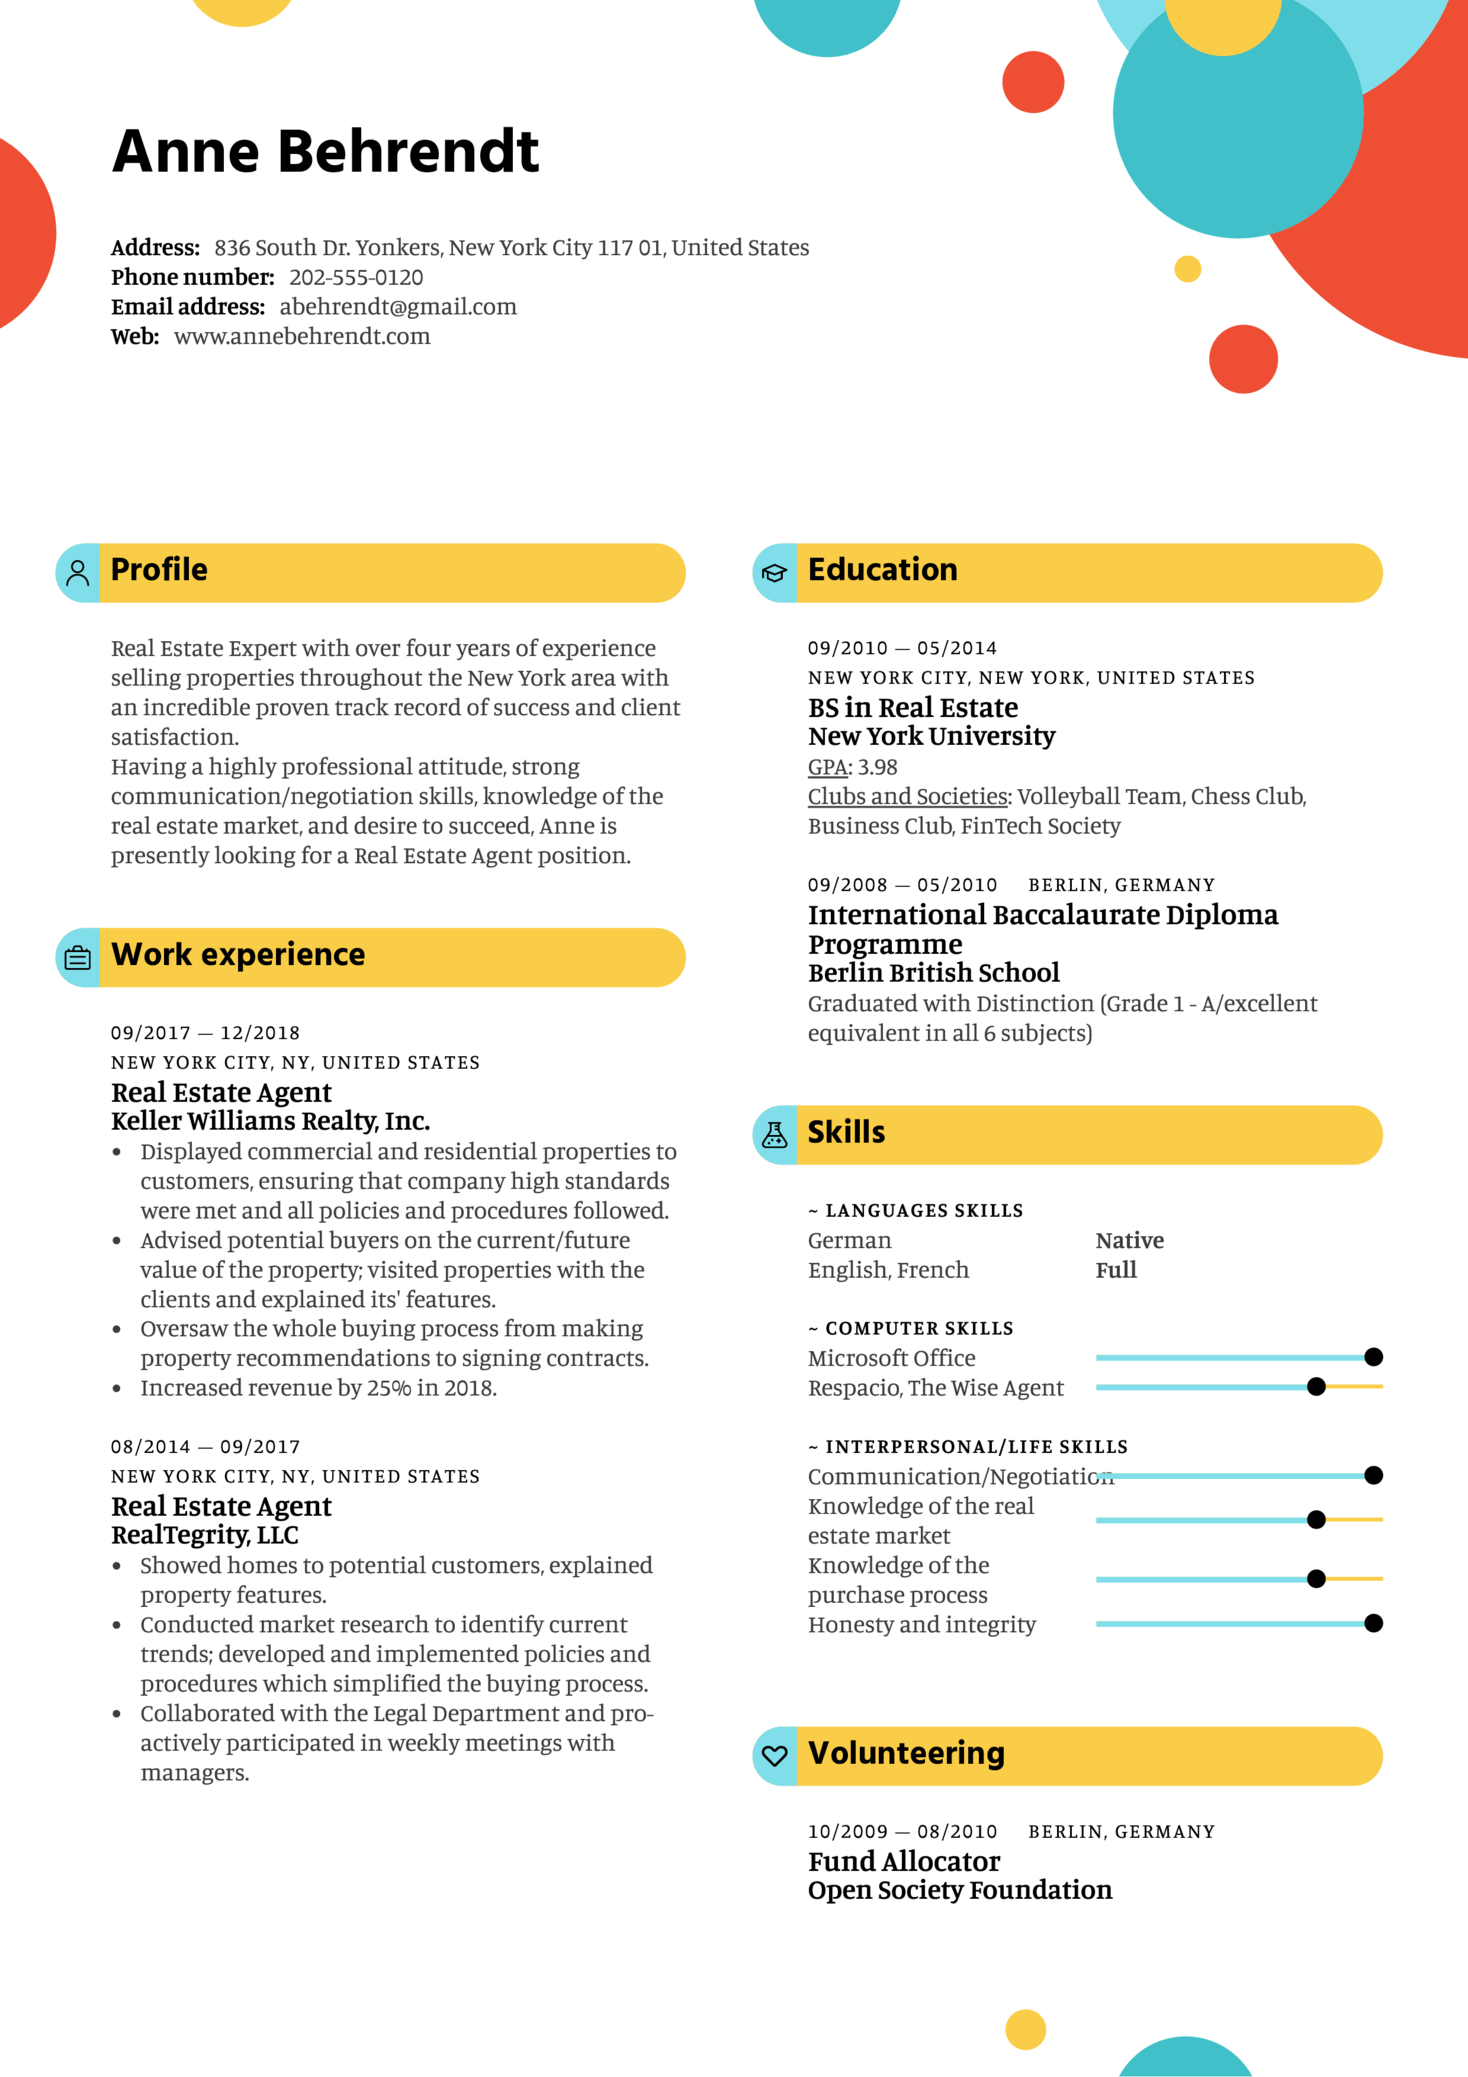 Real Estate Agent Resume Template (Part 1)